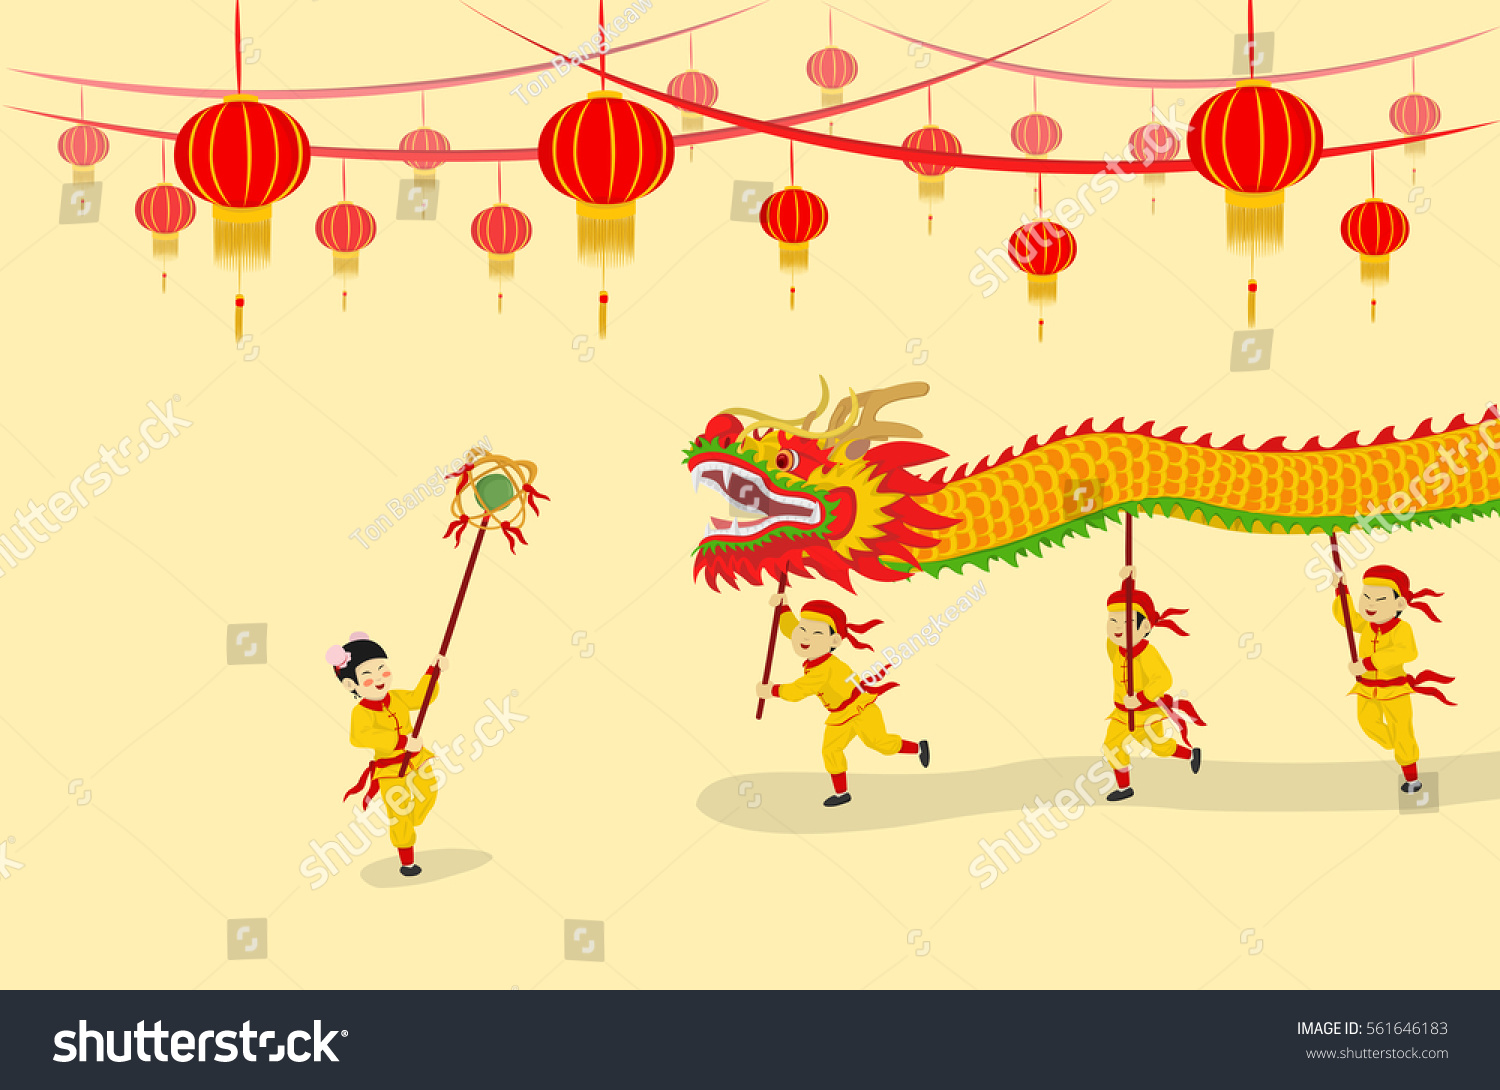 vector illustration festival chinese new year dragon dancing show and decorated with chinese lanterns